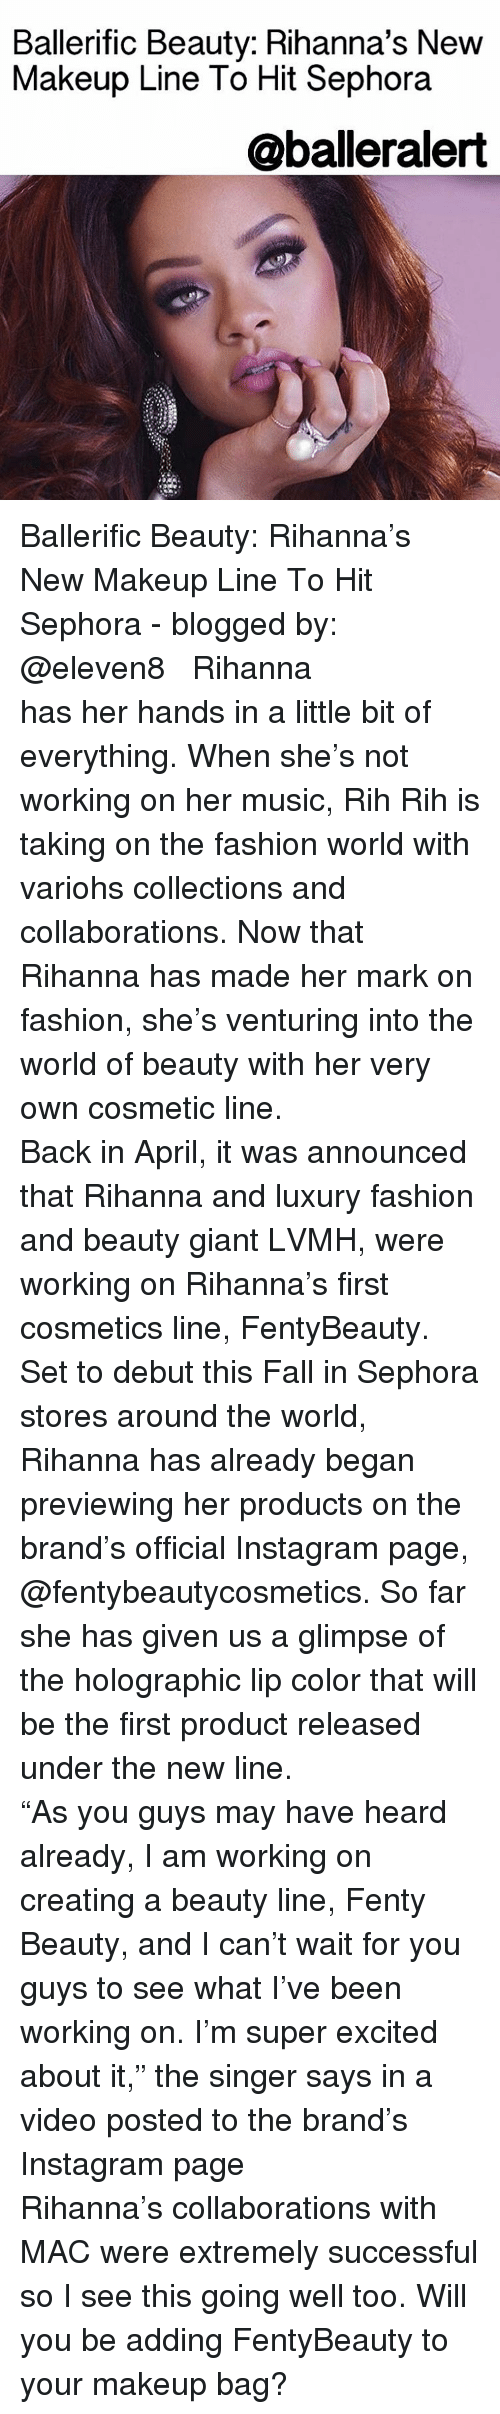 "Excition: Ballerific Beauty: Rihanna's New  Makeup Line To Hit Sephora  @balleralert Ballerific Beauty: Rihanna's New Makeup Line To Hit Sephora - blogged by: @eleven8 ⠀⠀⠀⠀⠀⠀⠀⠀⠀ ⠀⠀⠀⠀⠀⠀⠀⠀⠀ Rihanna has her hands in a little bit of everything. When she's not working on her music, Rih Rih is taking on the fashion world with variohs collections and collaborations. Now that Rihanna has made her mark on fashion, she's venturing into the world of beauty with her very own cosmetic line. ⠀⠀⠀⠀⠀⠀⠀⠀⠀ ⠀⠀⠀⠀⠀⠀⠀⠀⠀ Back in April, it was announced that Rihanna and luxury fashion and beauty giant LVMH, were working on Rihanna's first cosmetics line, FentyBeauty. Set to debut this Fall in Sephora stores around the world, Rihanna has already began previewing her products on the brand's official Instagram page, @fentybeautycosmetics. So far she has given us a glimpse of the holographic lip color that will be the first product released under the new line. ⠀⠀⠀⠀⠀⠀⠀⠀⠀ ⠀⠀⠀⠀⠀⠀⠀⠀⠀ ""As you guys may have heard already, I am working on creating a beauty line, Fenty Beauty, and I can't wait for you guys to see what I've been working on. I'm super excited about it,"" the singer says in a video posted to the brand's Instagram page ⠀⠀⠀⠀⠀⠀⠀⠀⠀ ⠀⠀⠀⠀⠀⠀⠀⠀⠀ Rihanna's collaborations with MAC were extremely successful so I see this going well too. Will you be adding FentyBeauty to your makeup bag?"